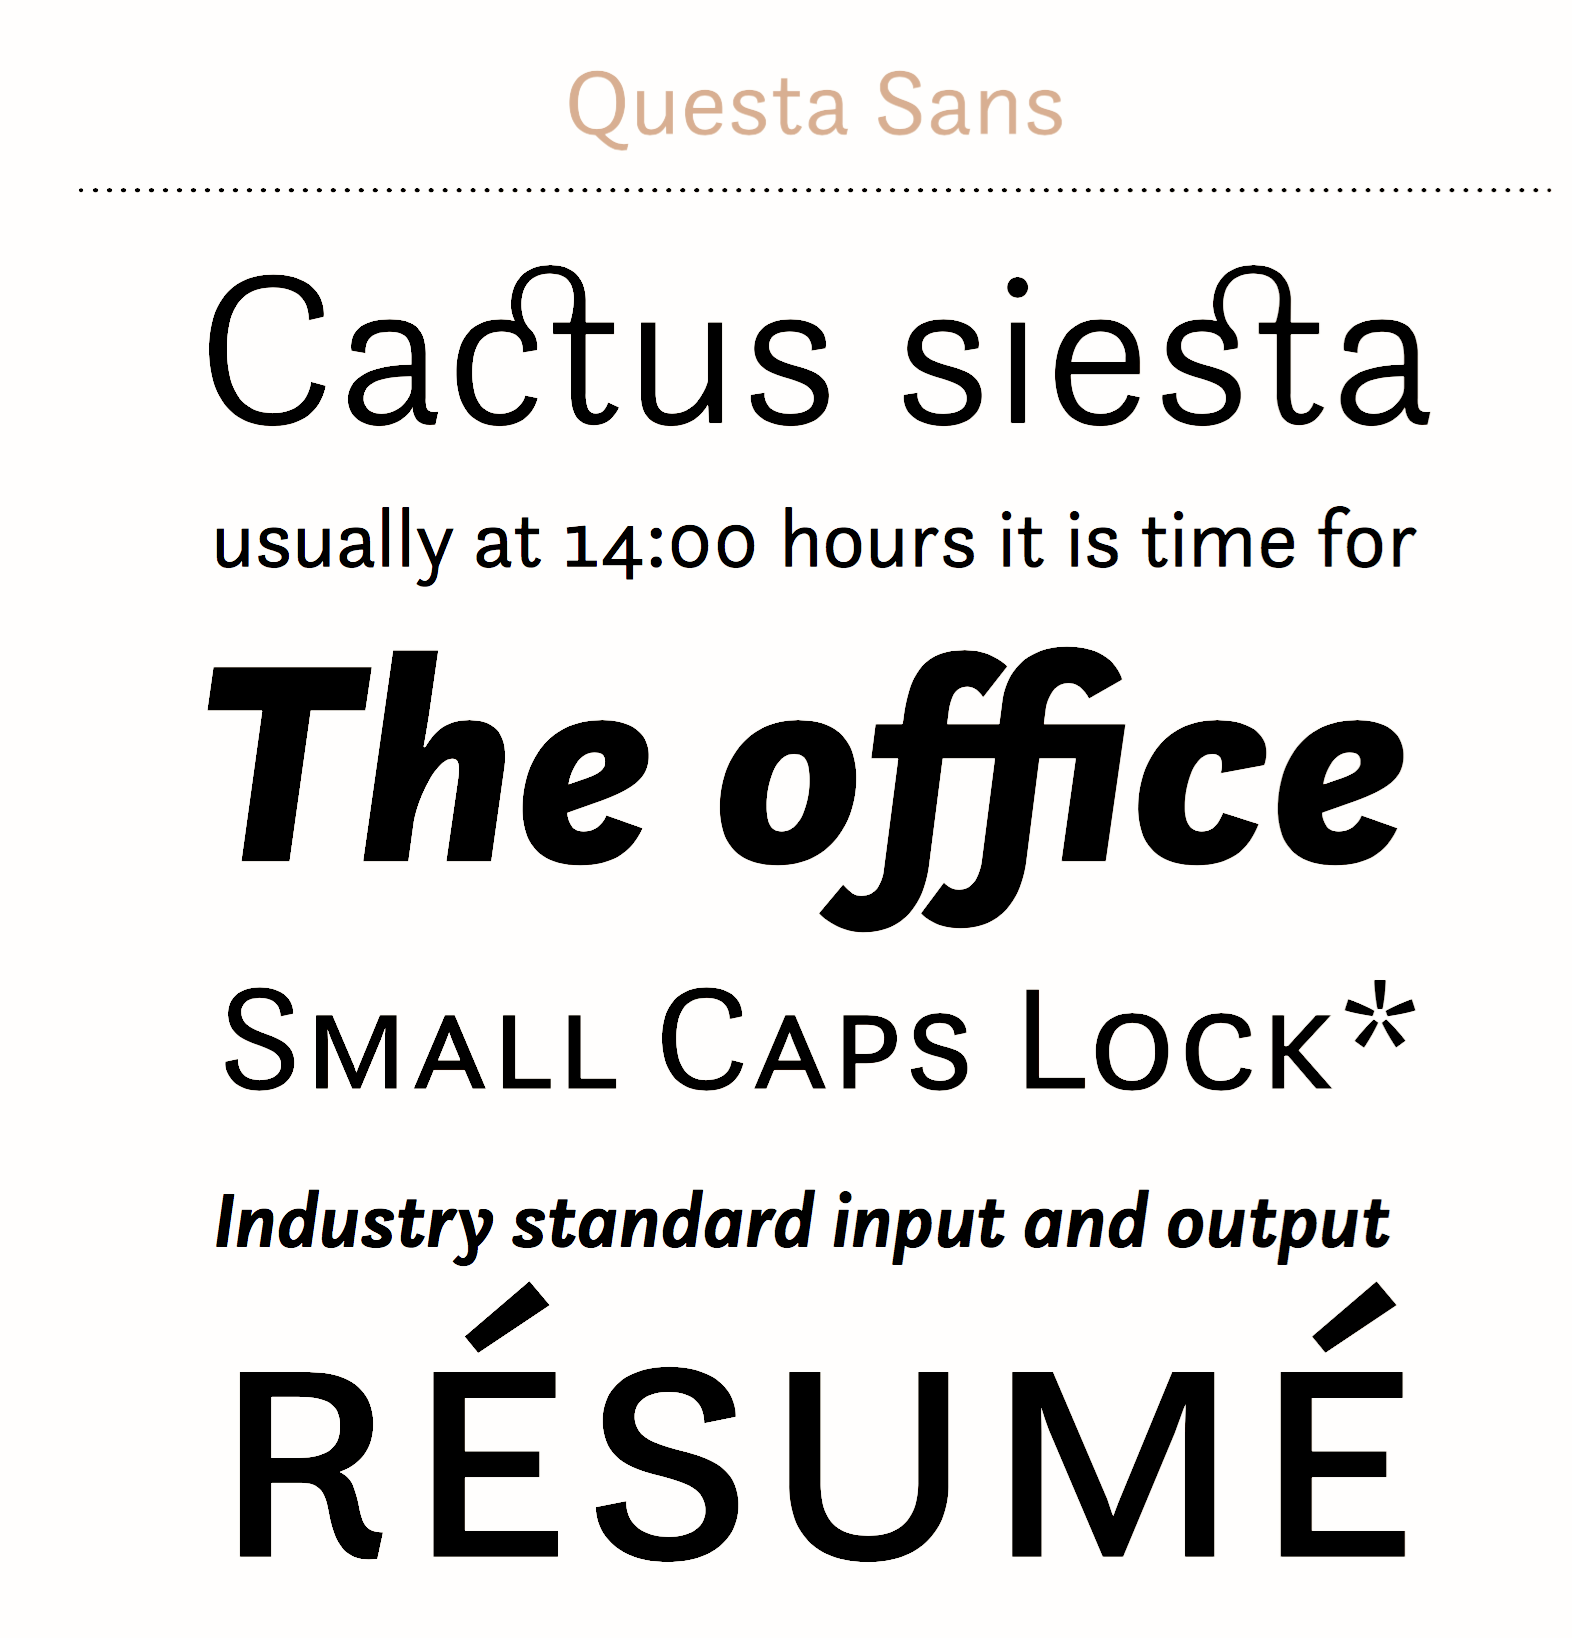 Questa sans in use fonts in use.